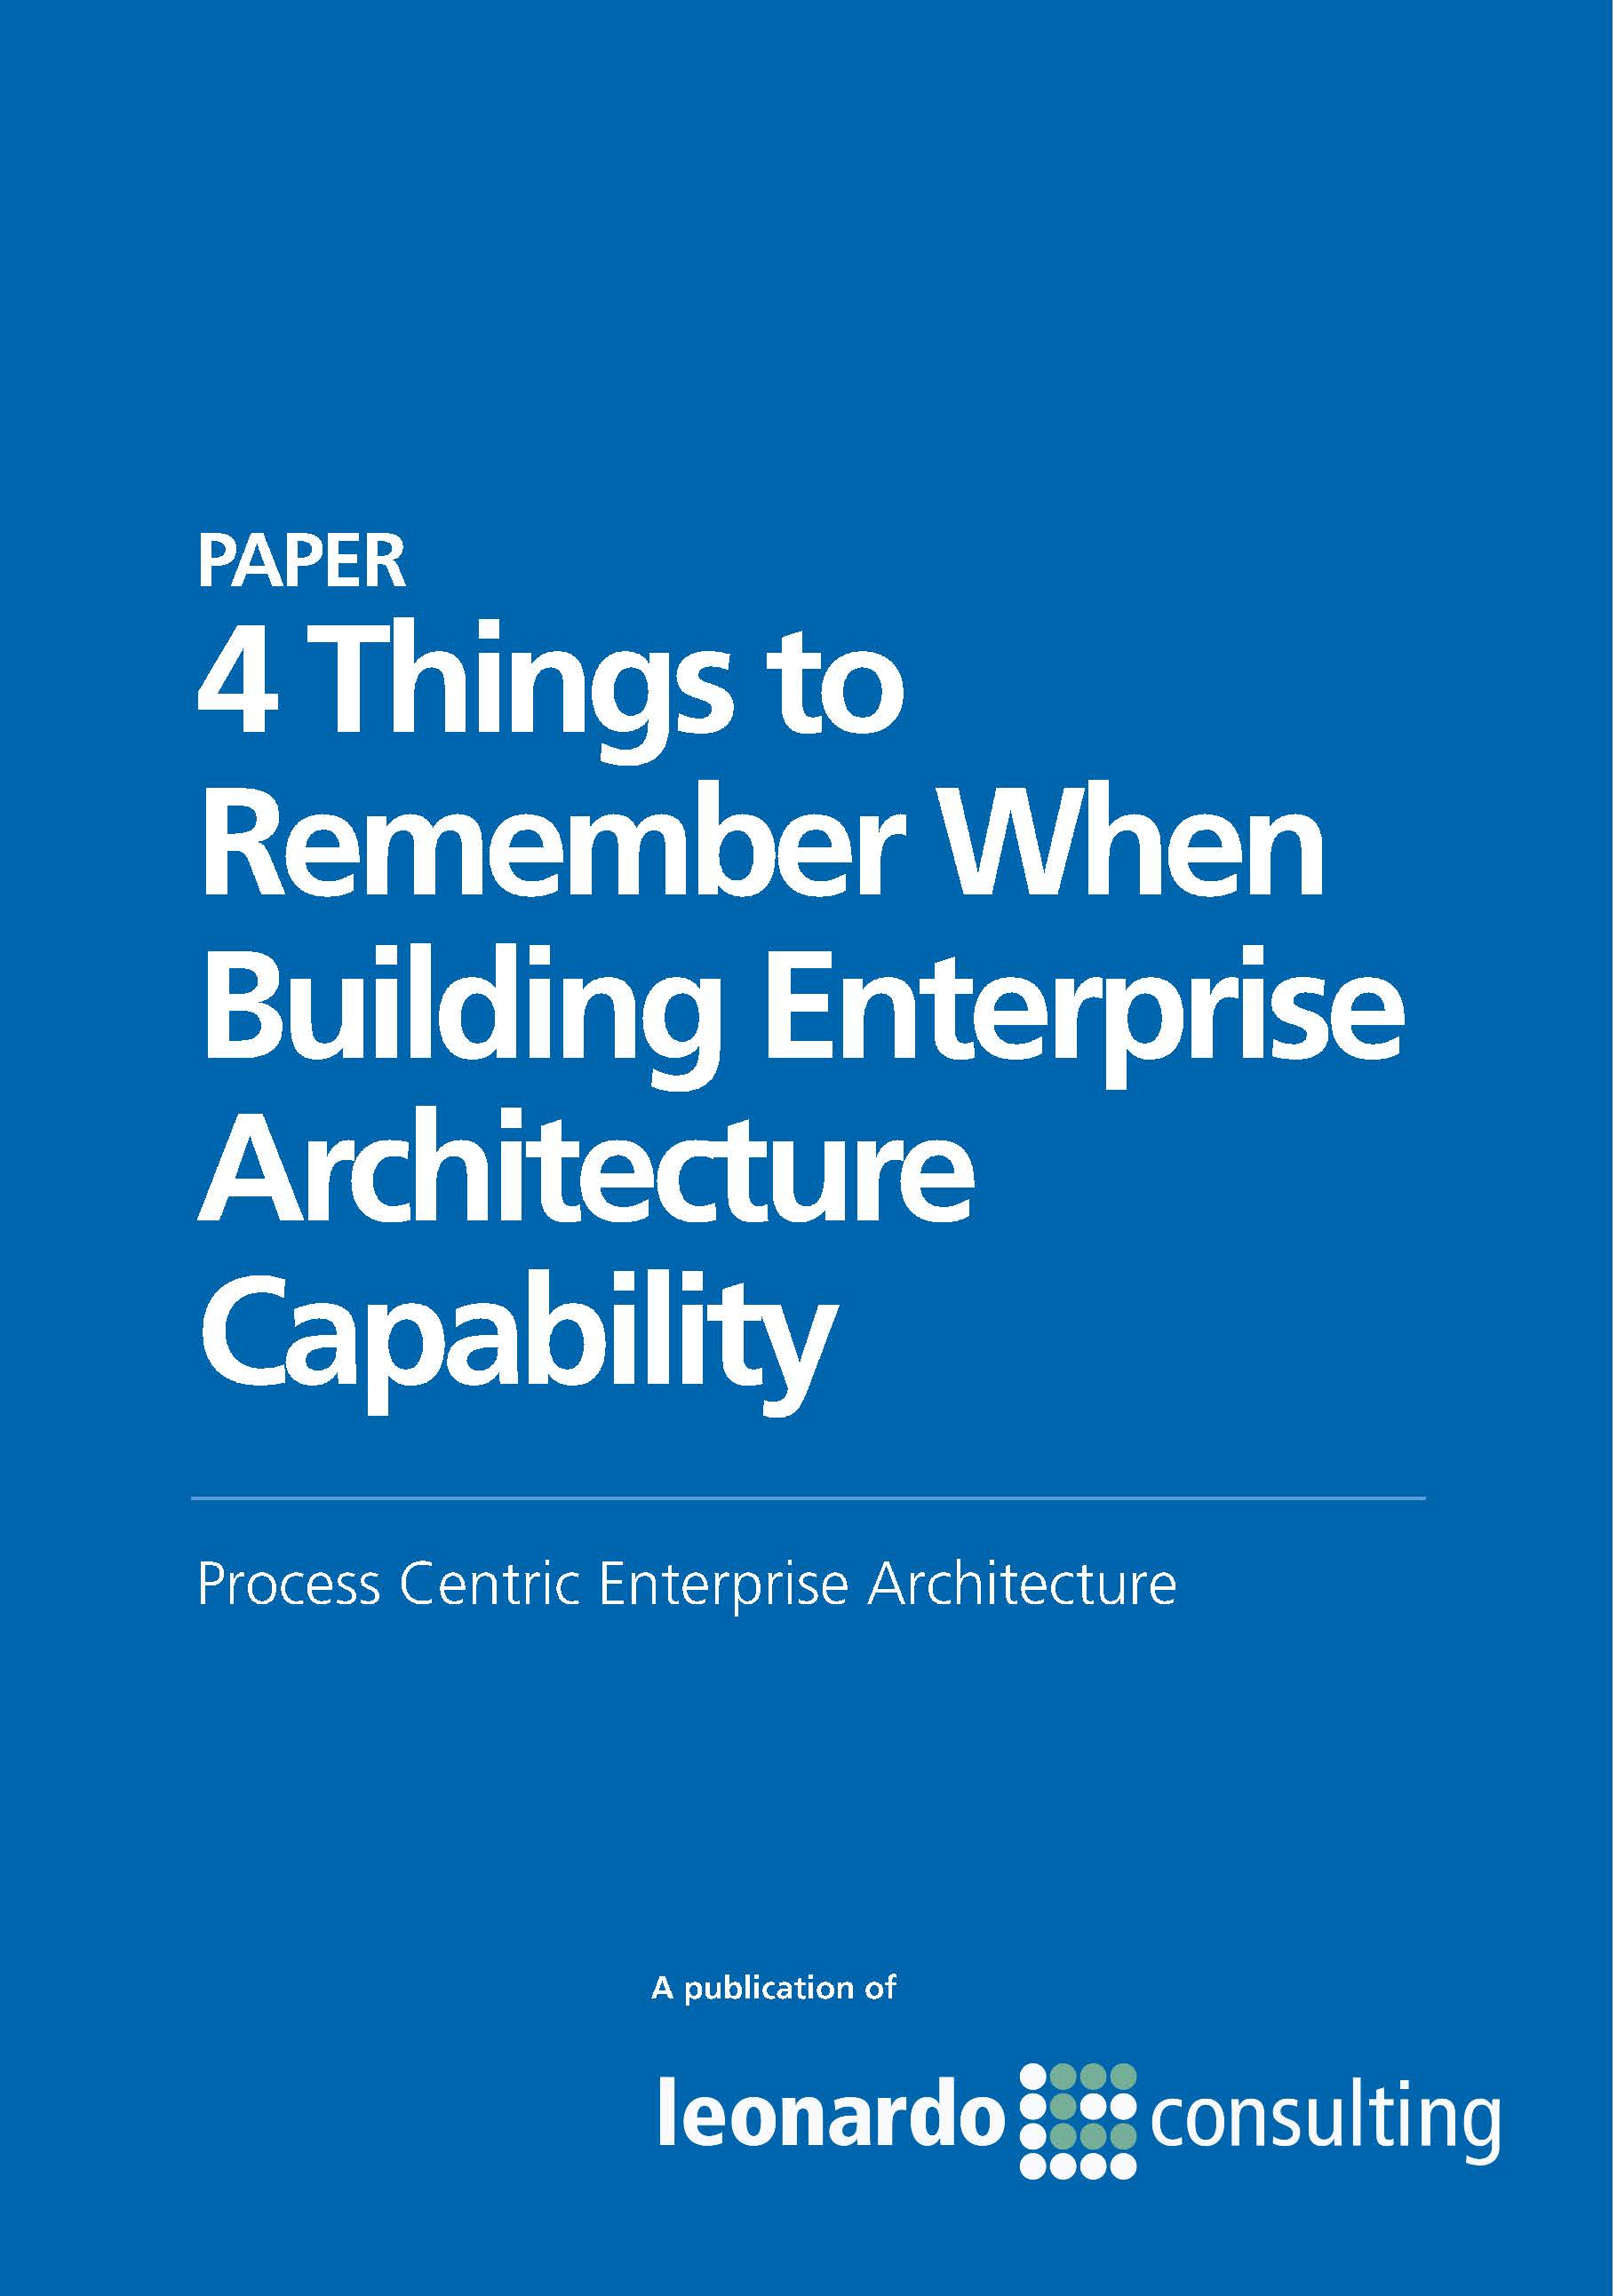 4 Things to Remember about Enterprise Architecture